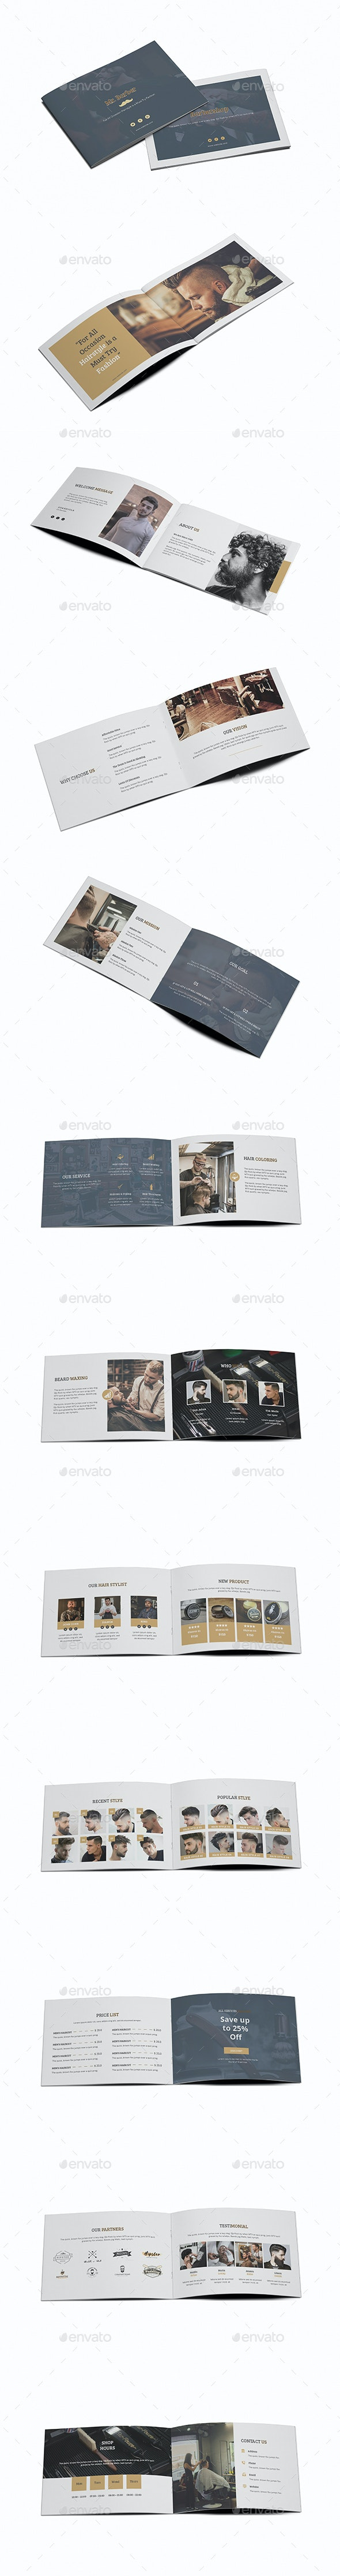 Mr.Barber Barbershop A5 Brochure Template - Brochures Print Templates